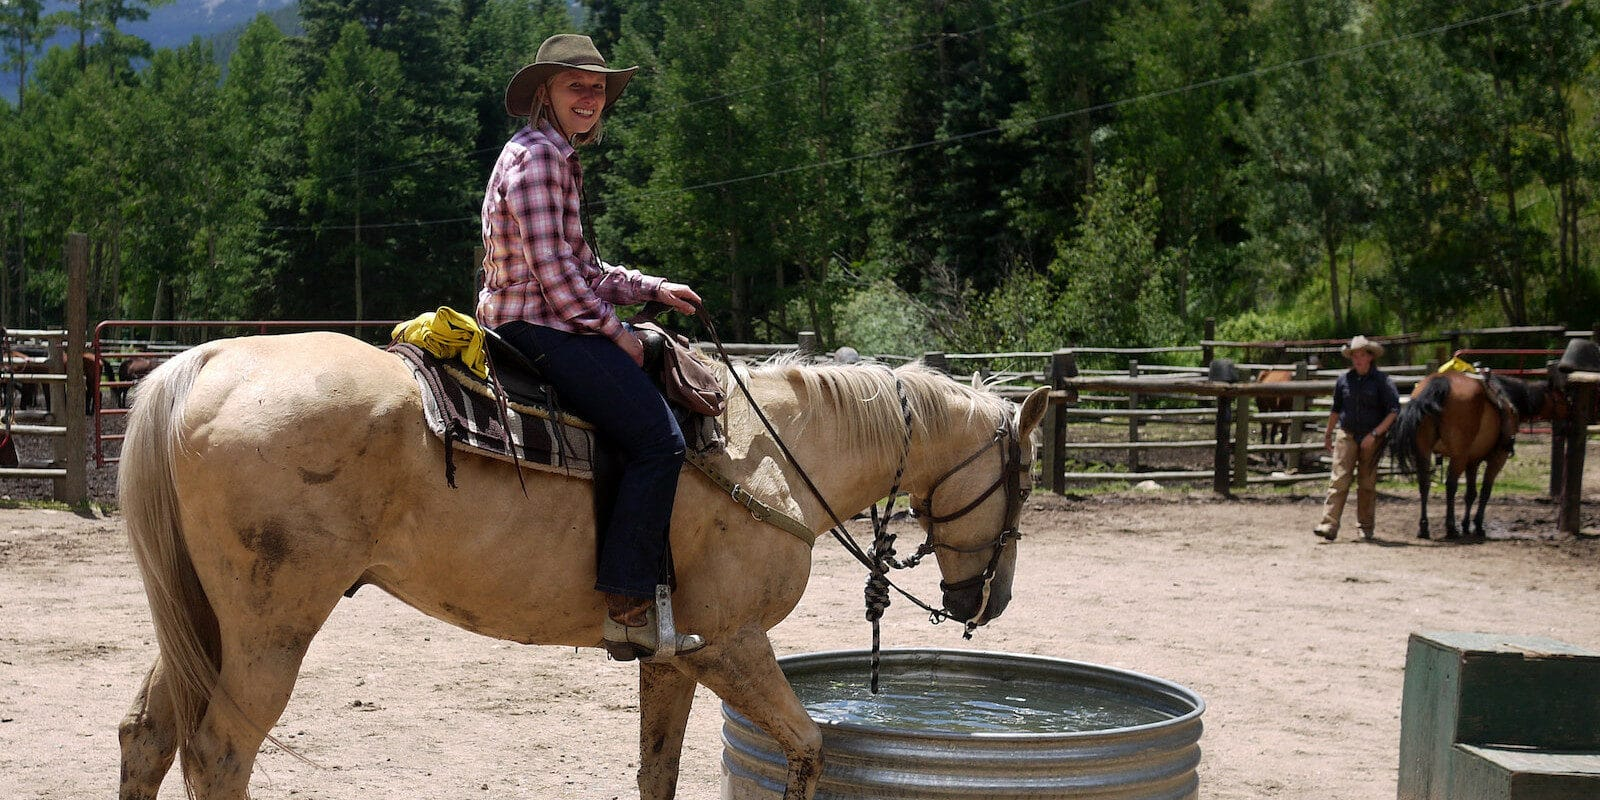 Image of a woman riding a horse at Tumbling River Ranch in Grant, Colorado